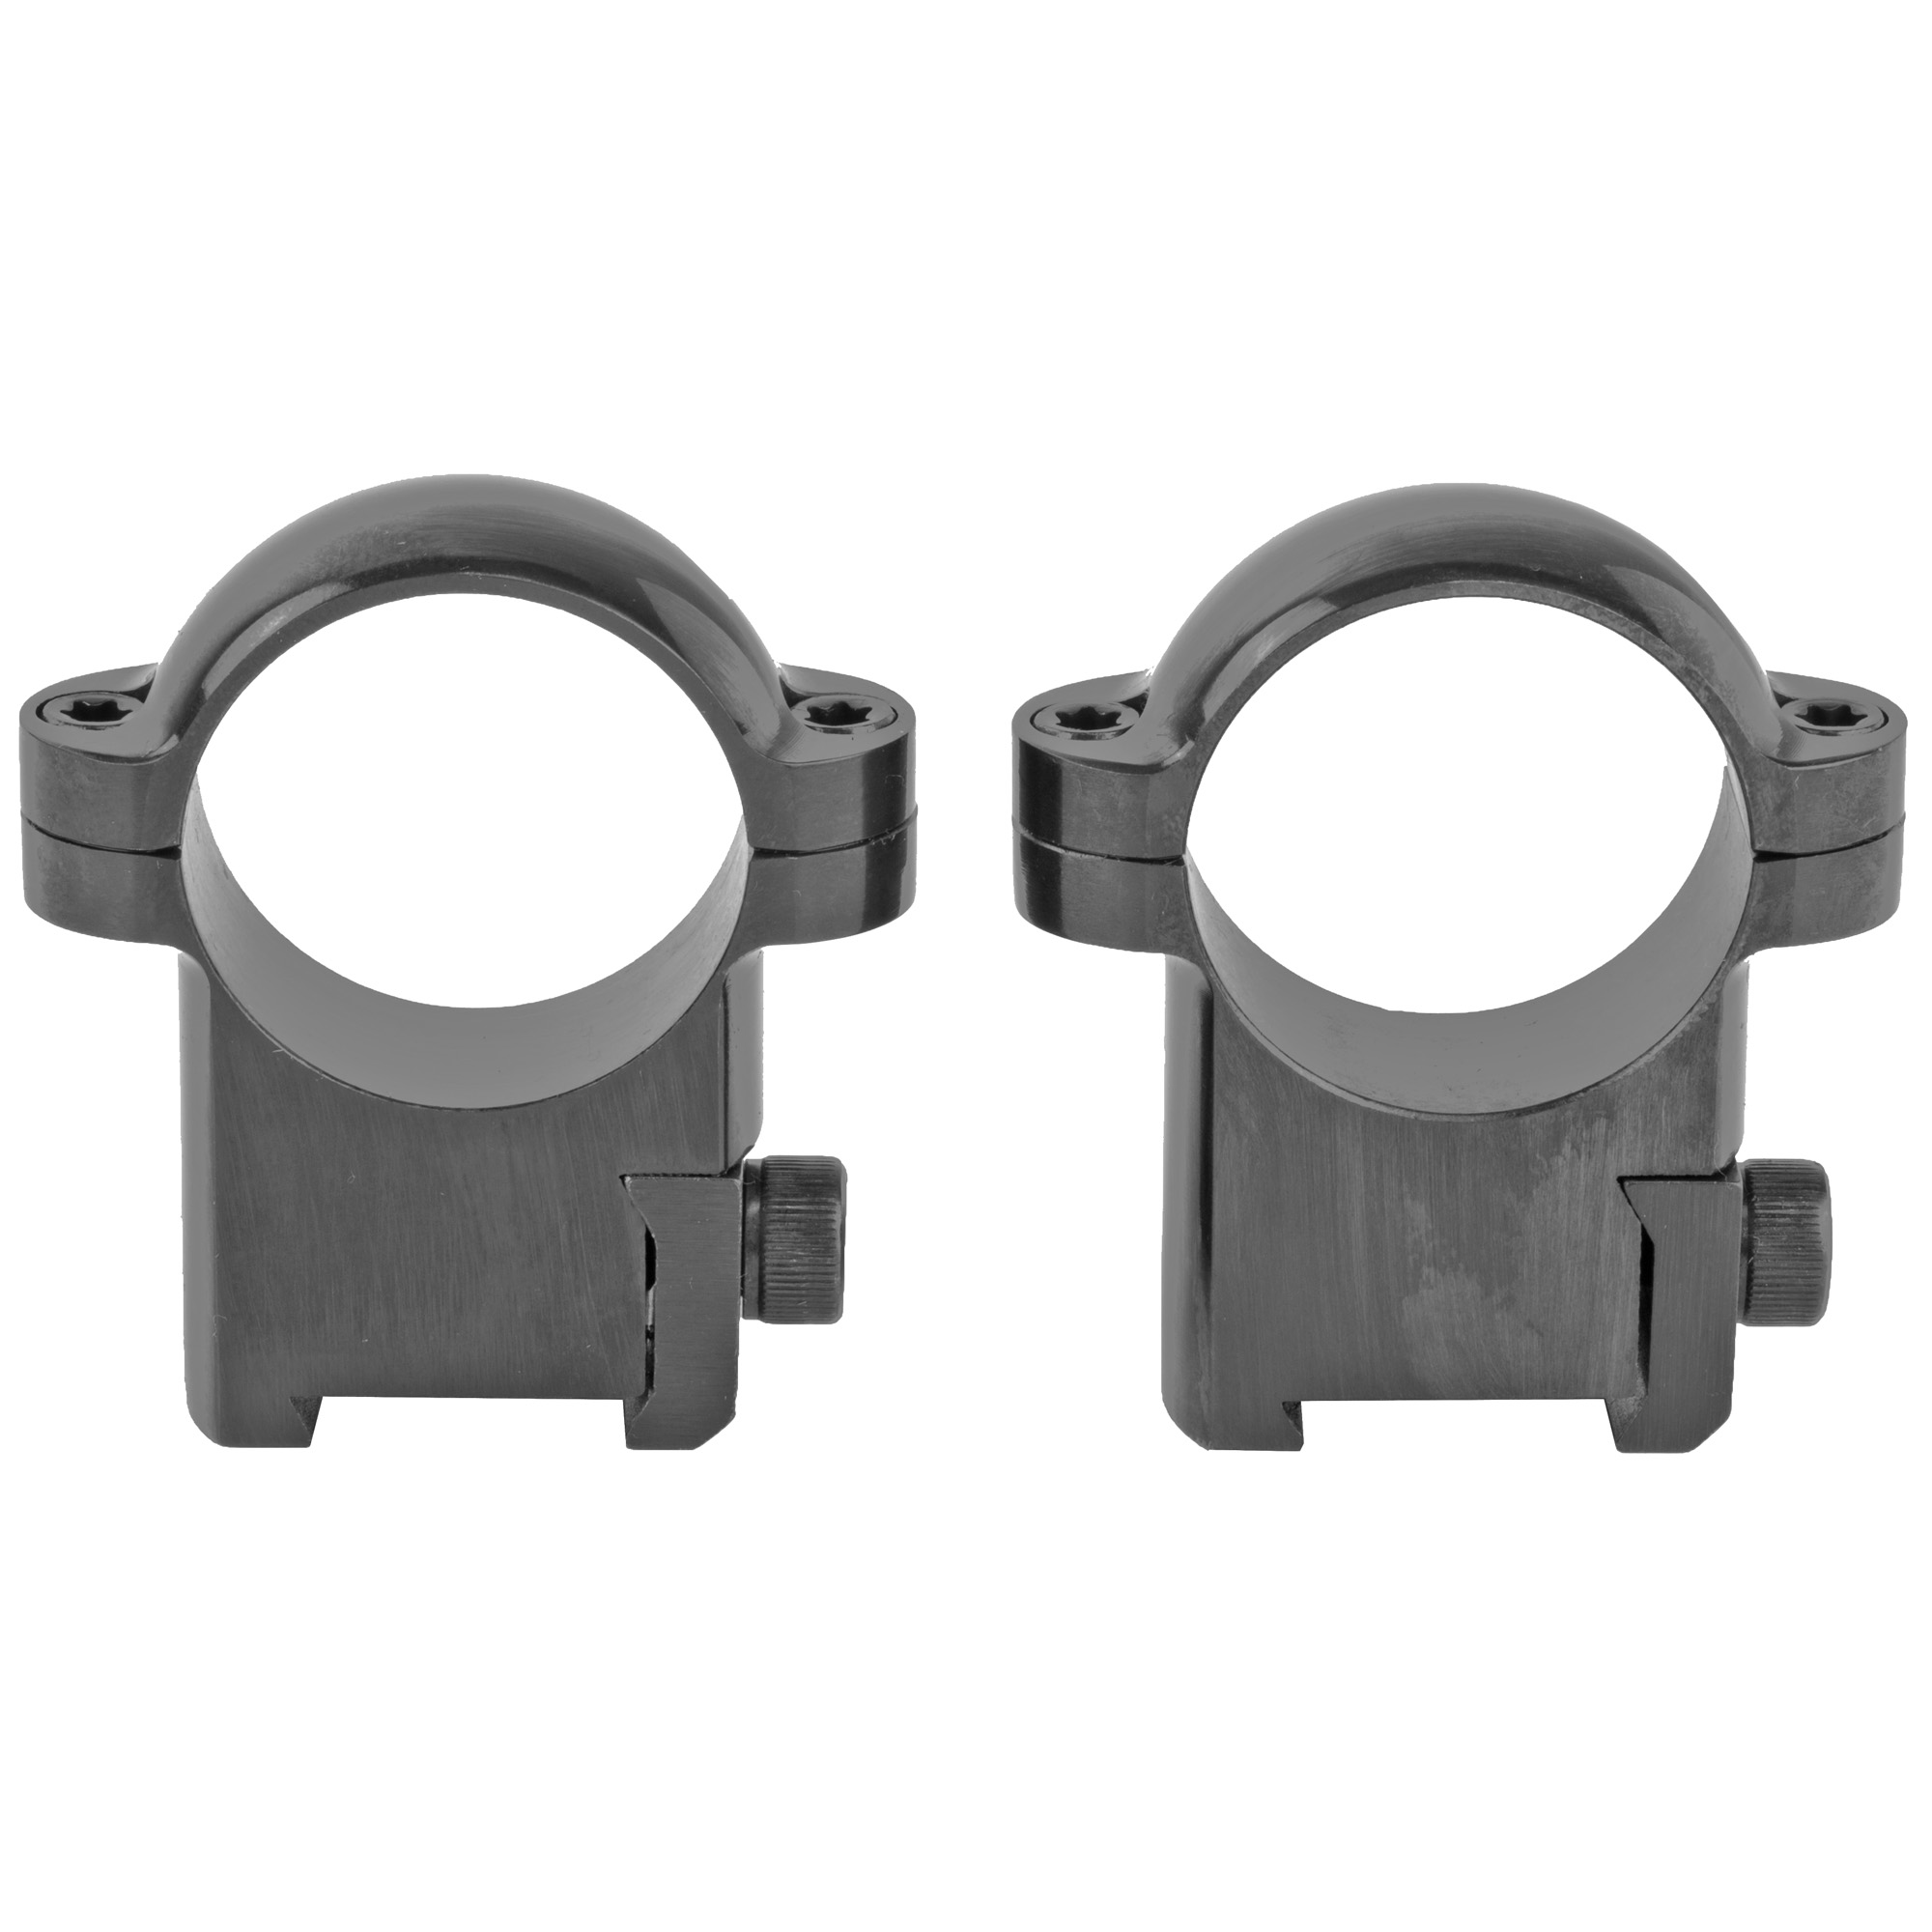 Burris rings for CZ(R) rifles are machined from solid steel for reliable accuracy.